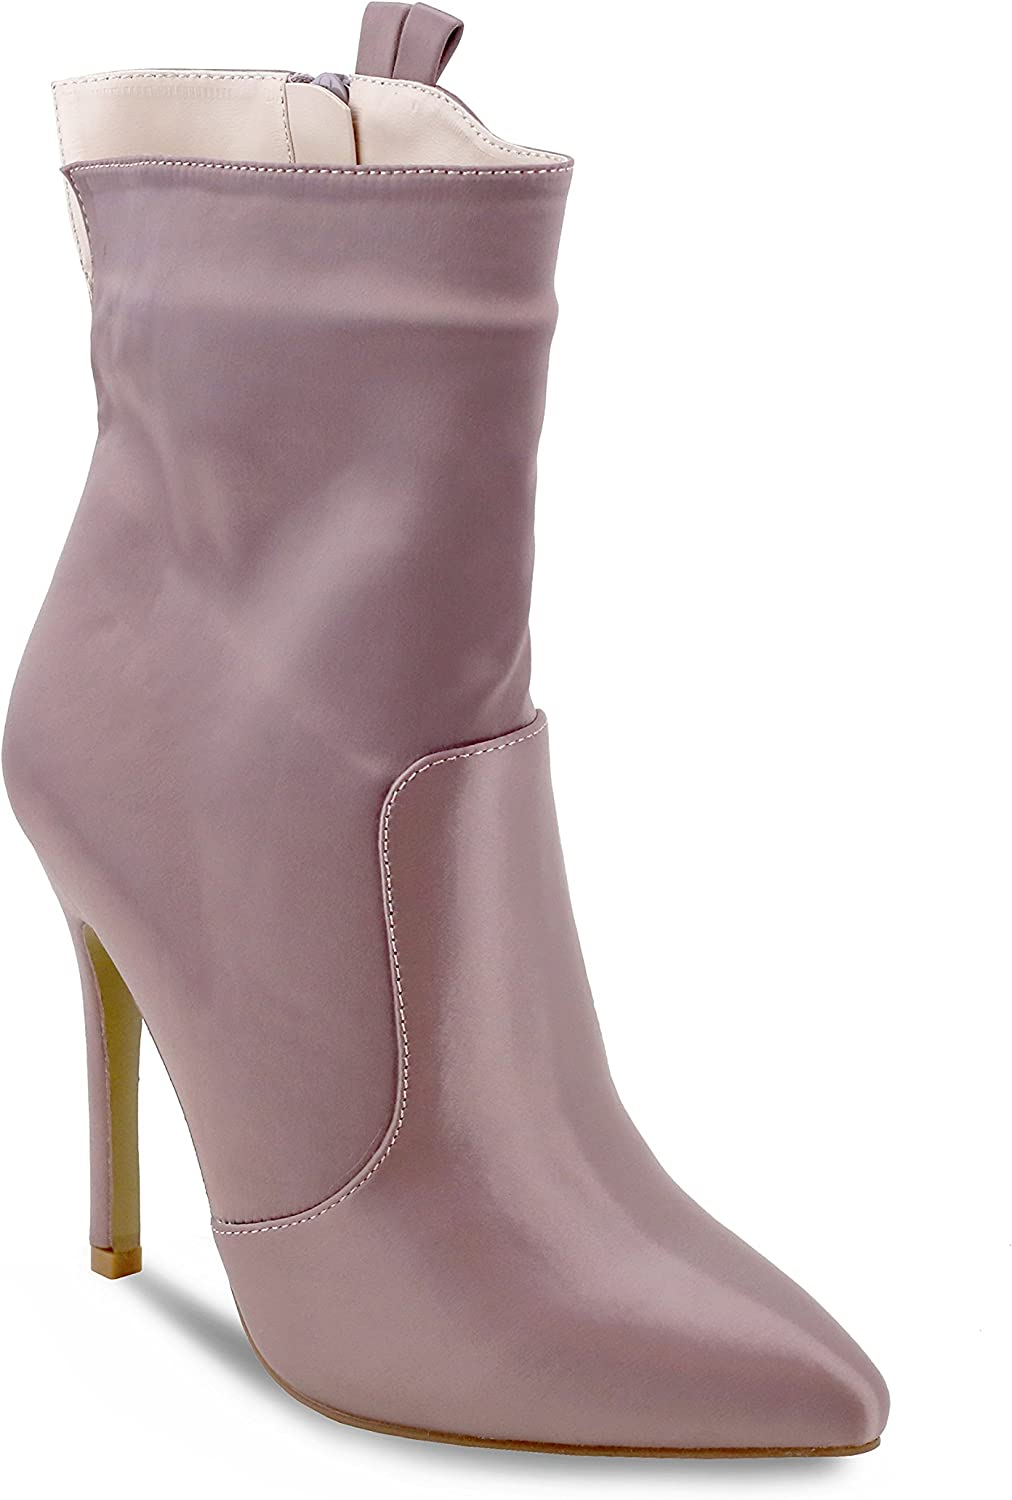 Olivia Miller 'Seaford' Satin Pointy Toe High Heel Ankle Booties